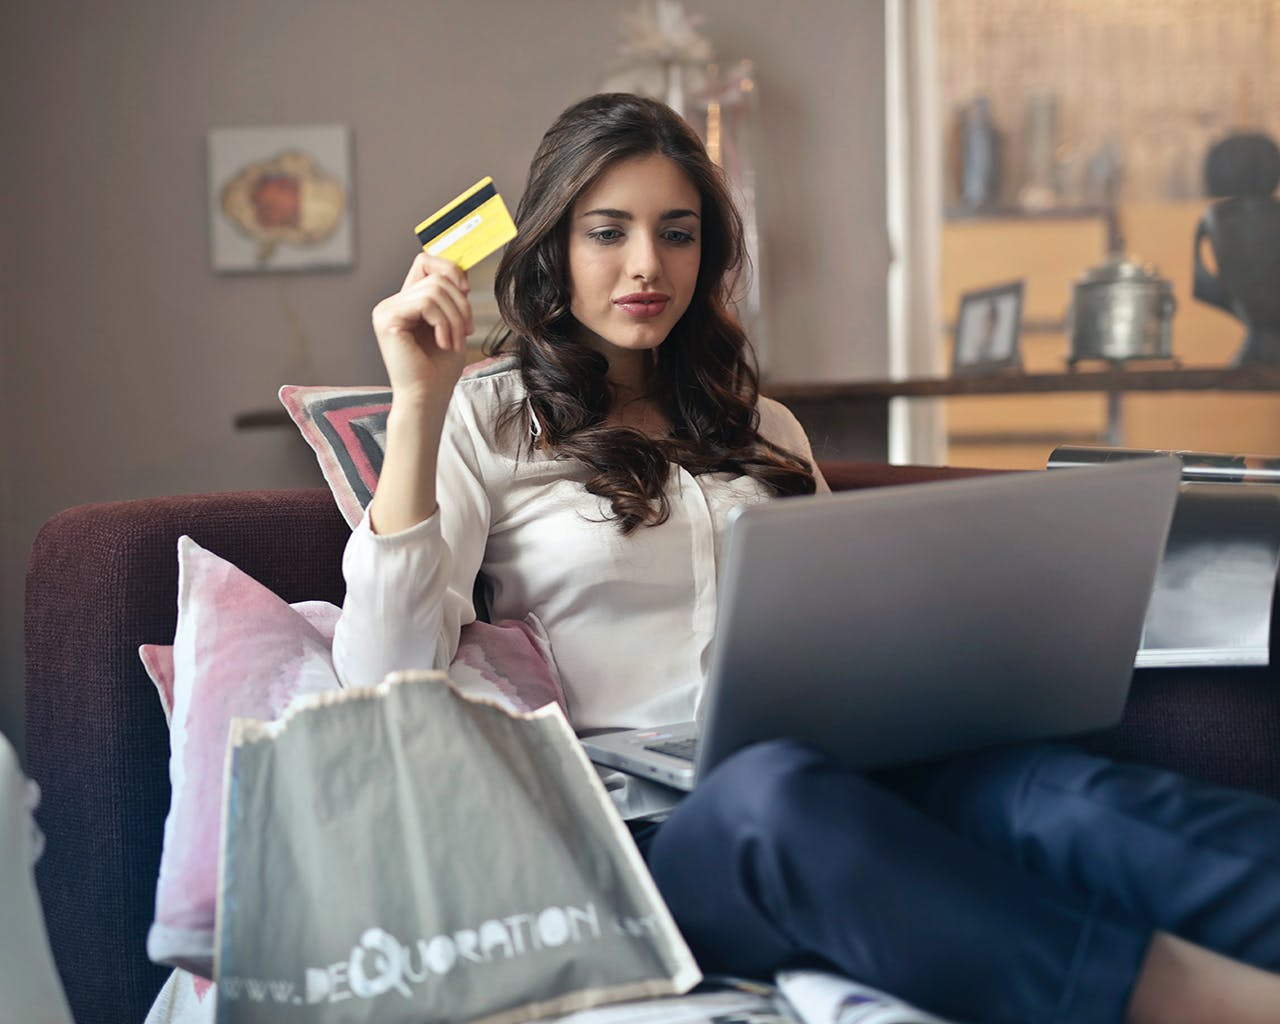 Credit Card Holders Can Get Up To 20% More Discount On Lazada's 6.6 Mid-year Sale